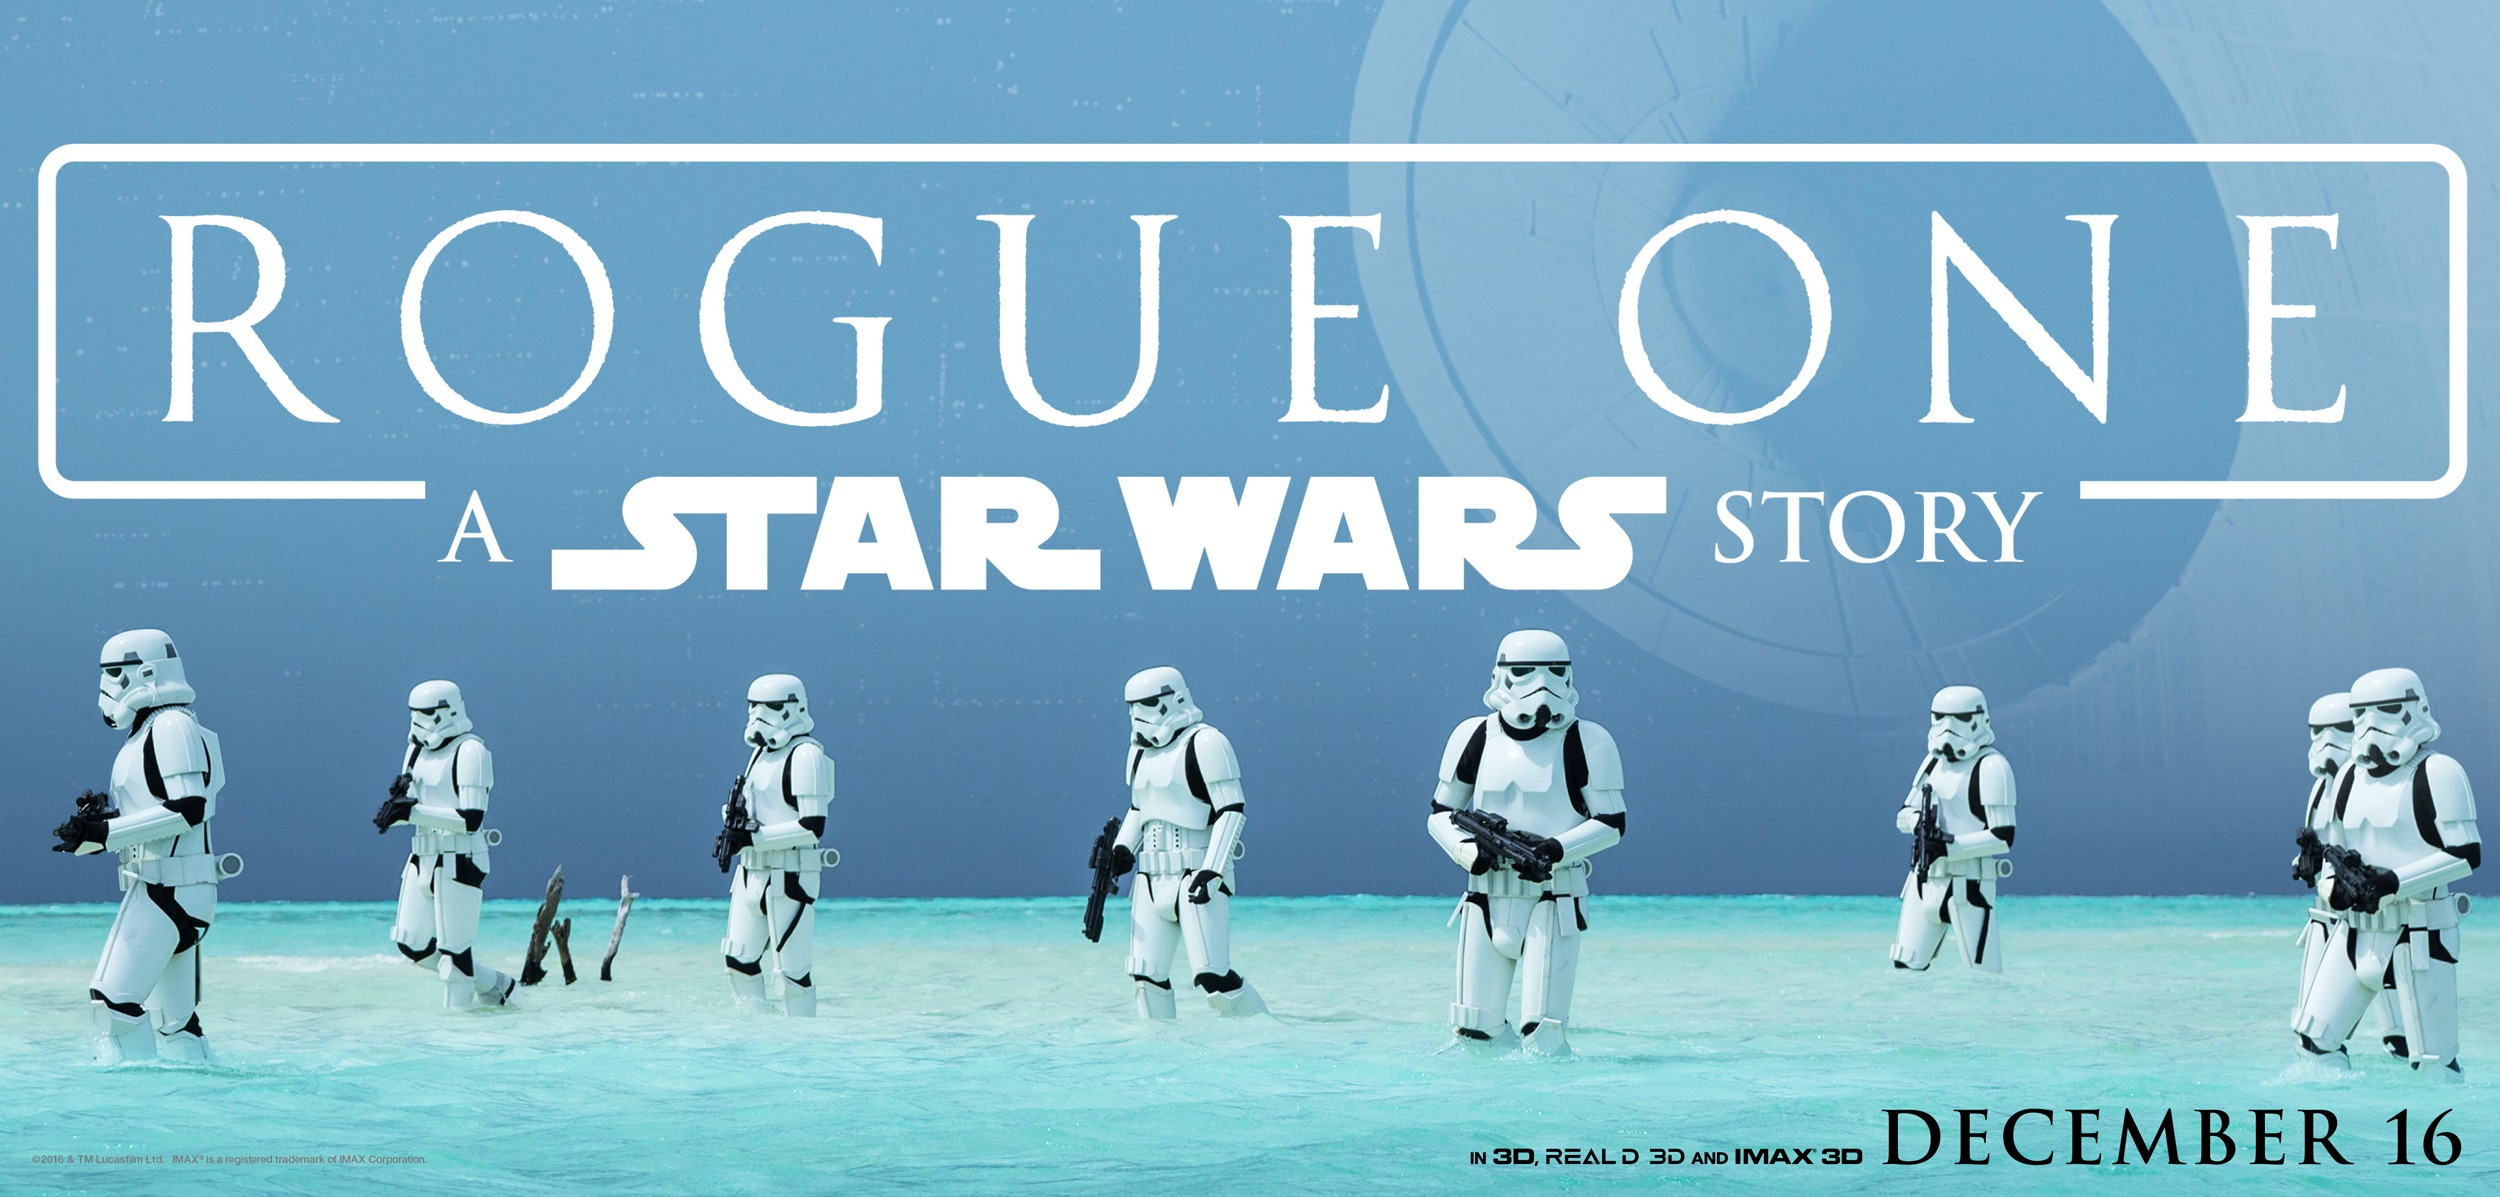 rogue-one-a-star-wars-story-05dezembro2016-1